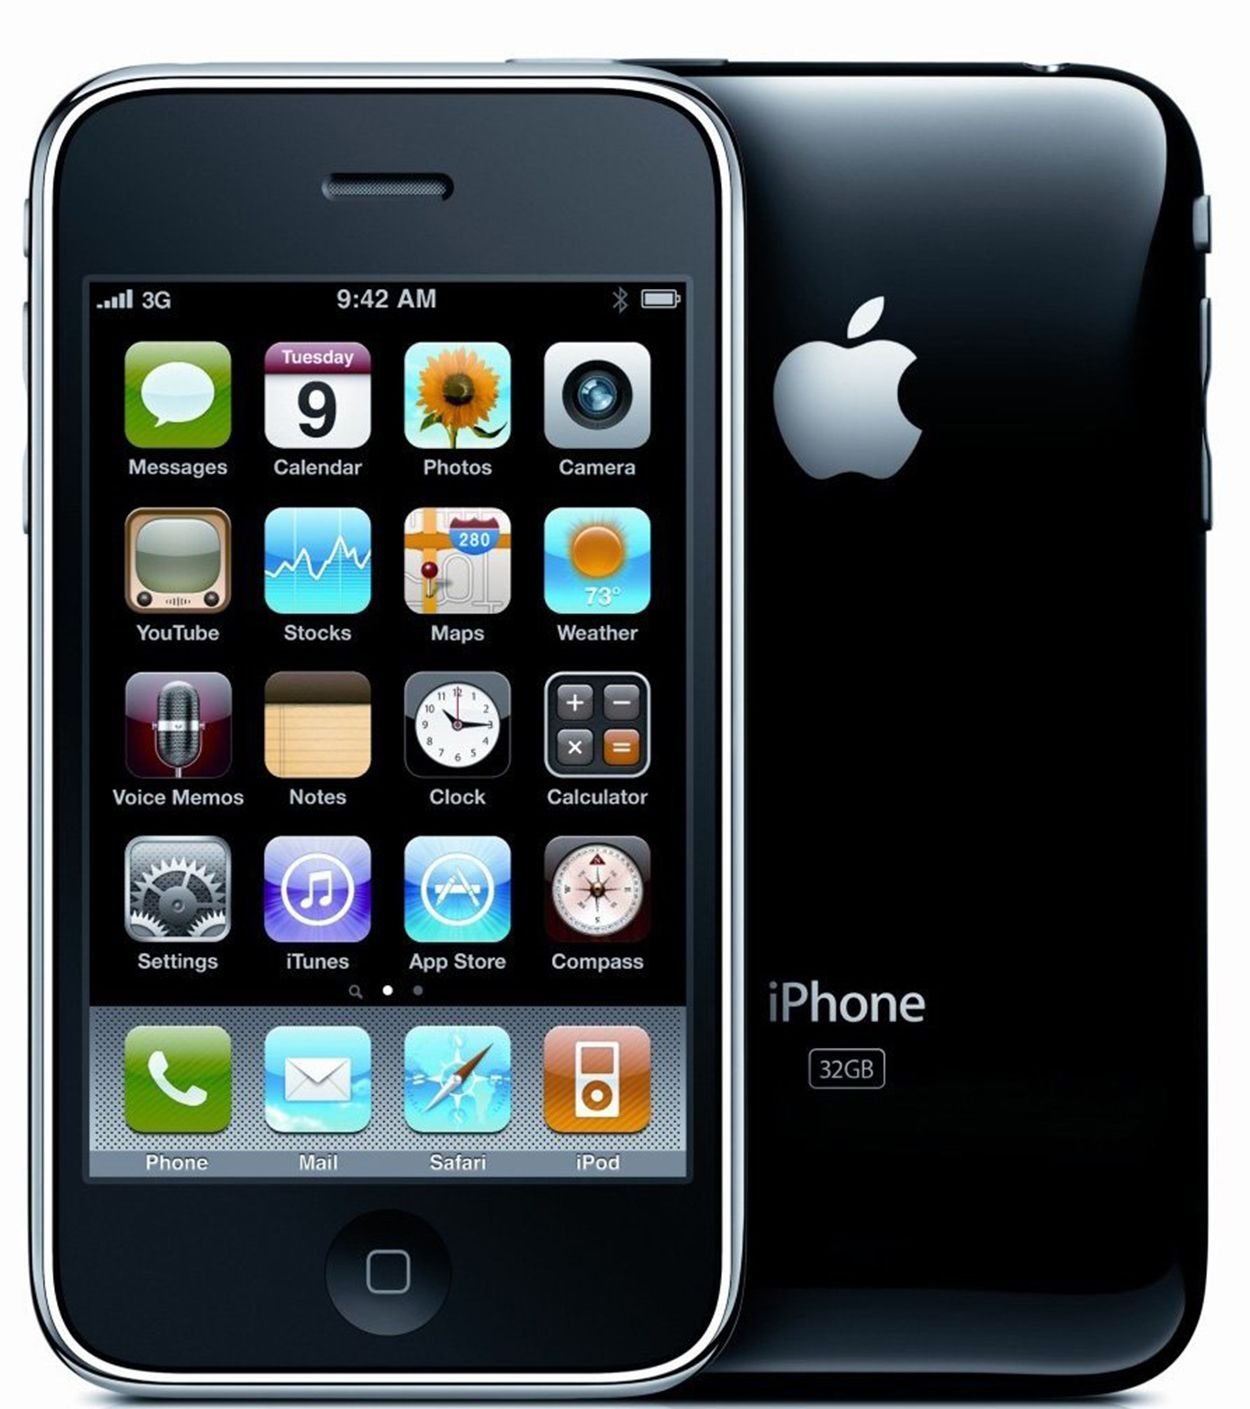 iPhone 3G Hardware and Software Features  iPhone 3G Hardw...